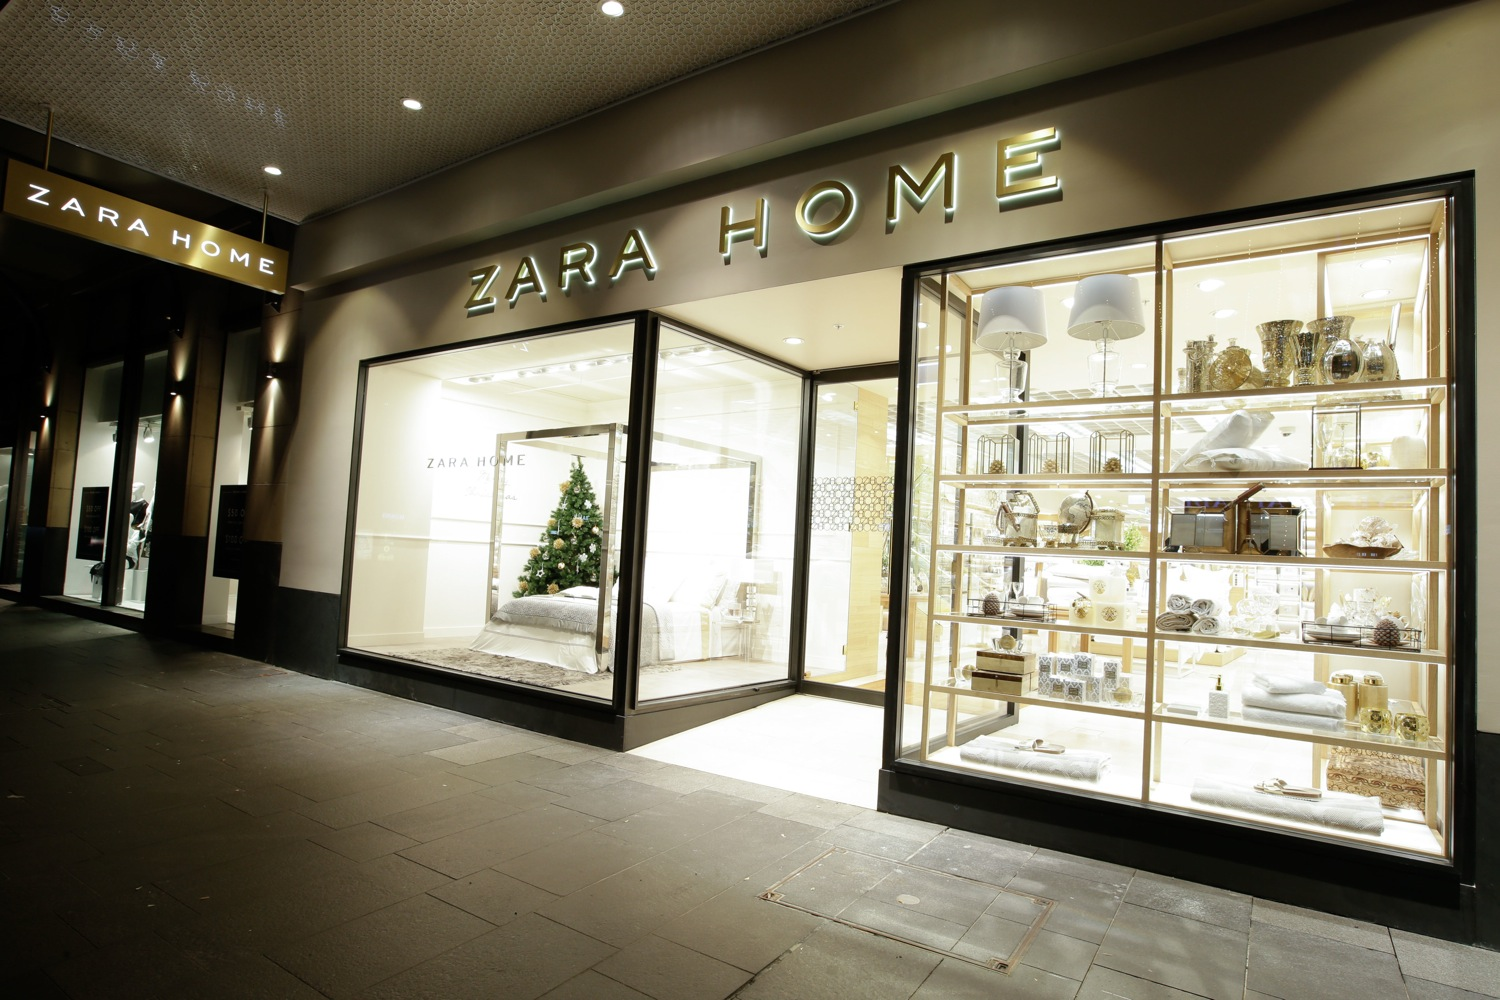 Online Australian Shopping Zara Home Launches Australian Online Store And Sydney Flagship